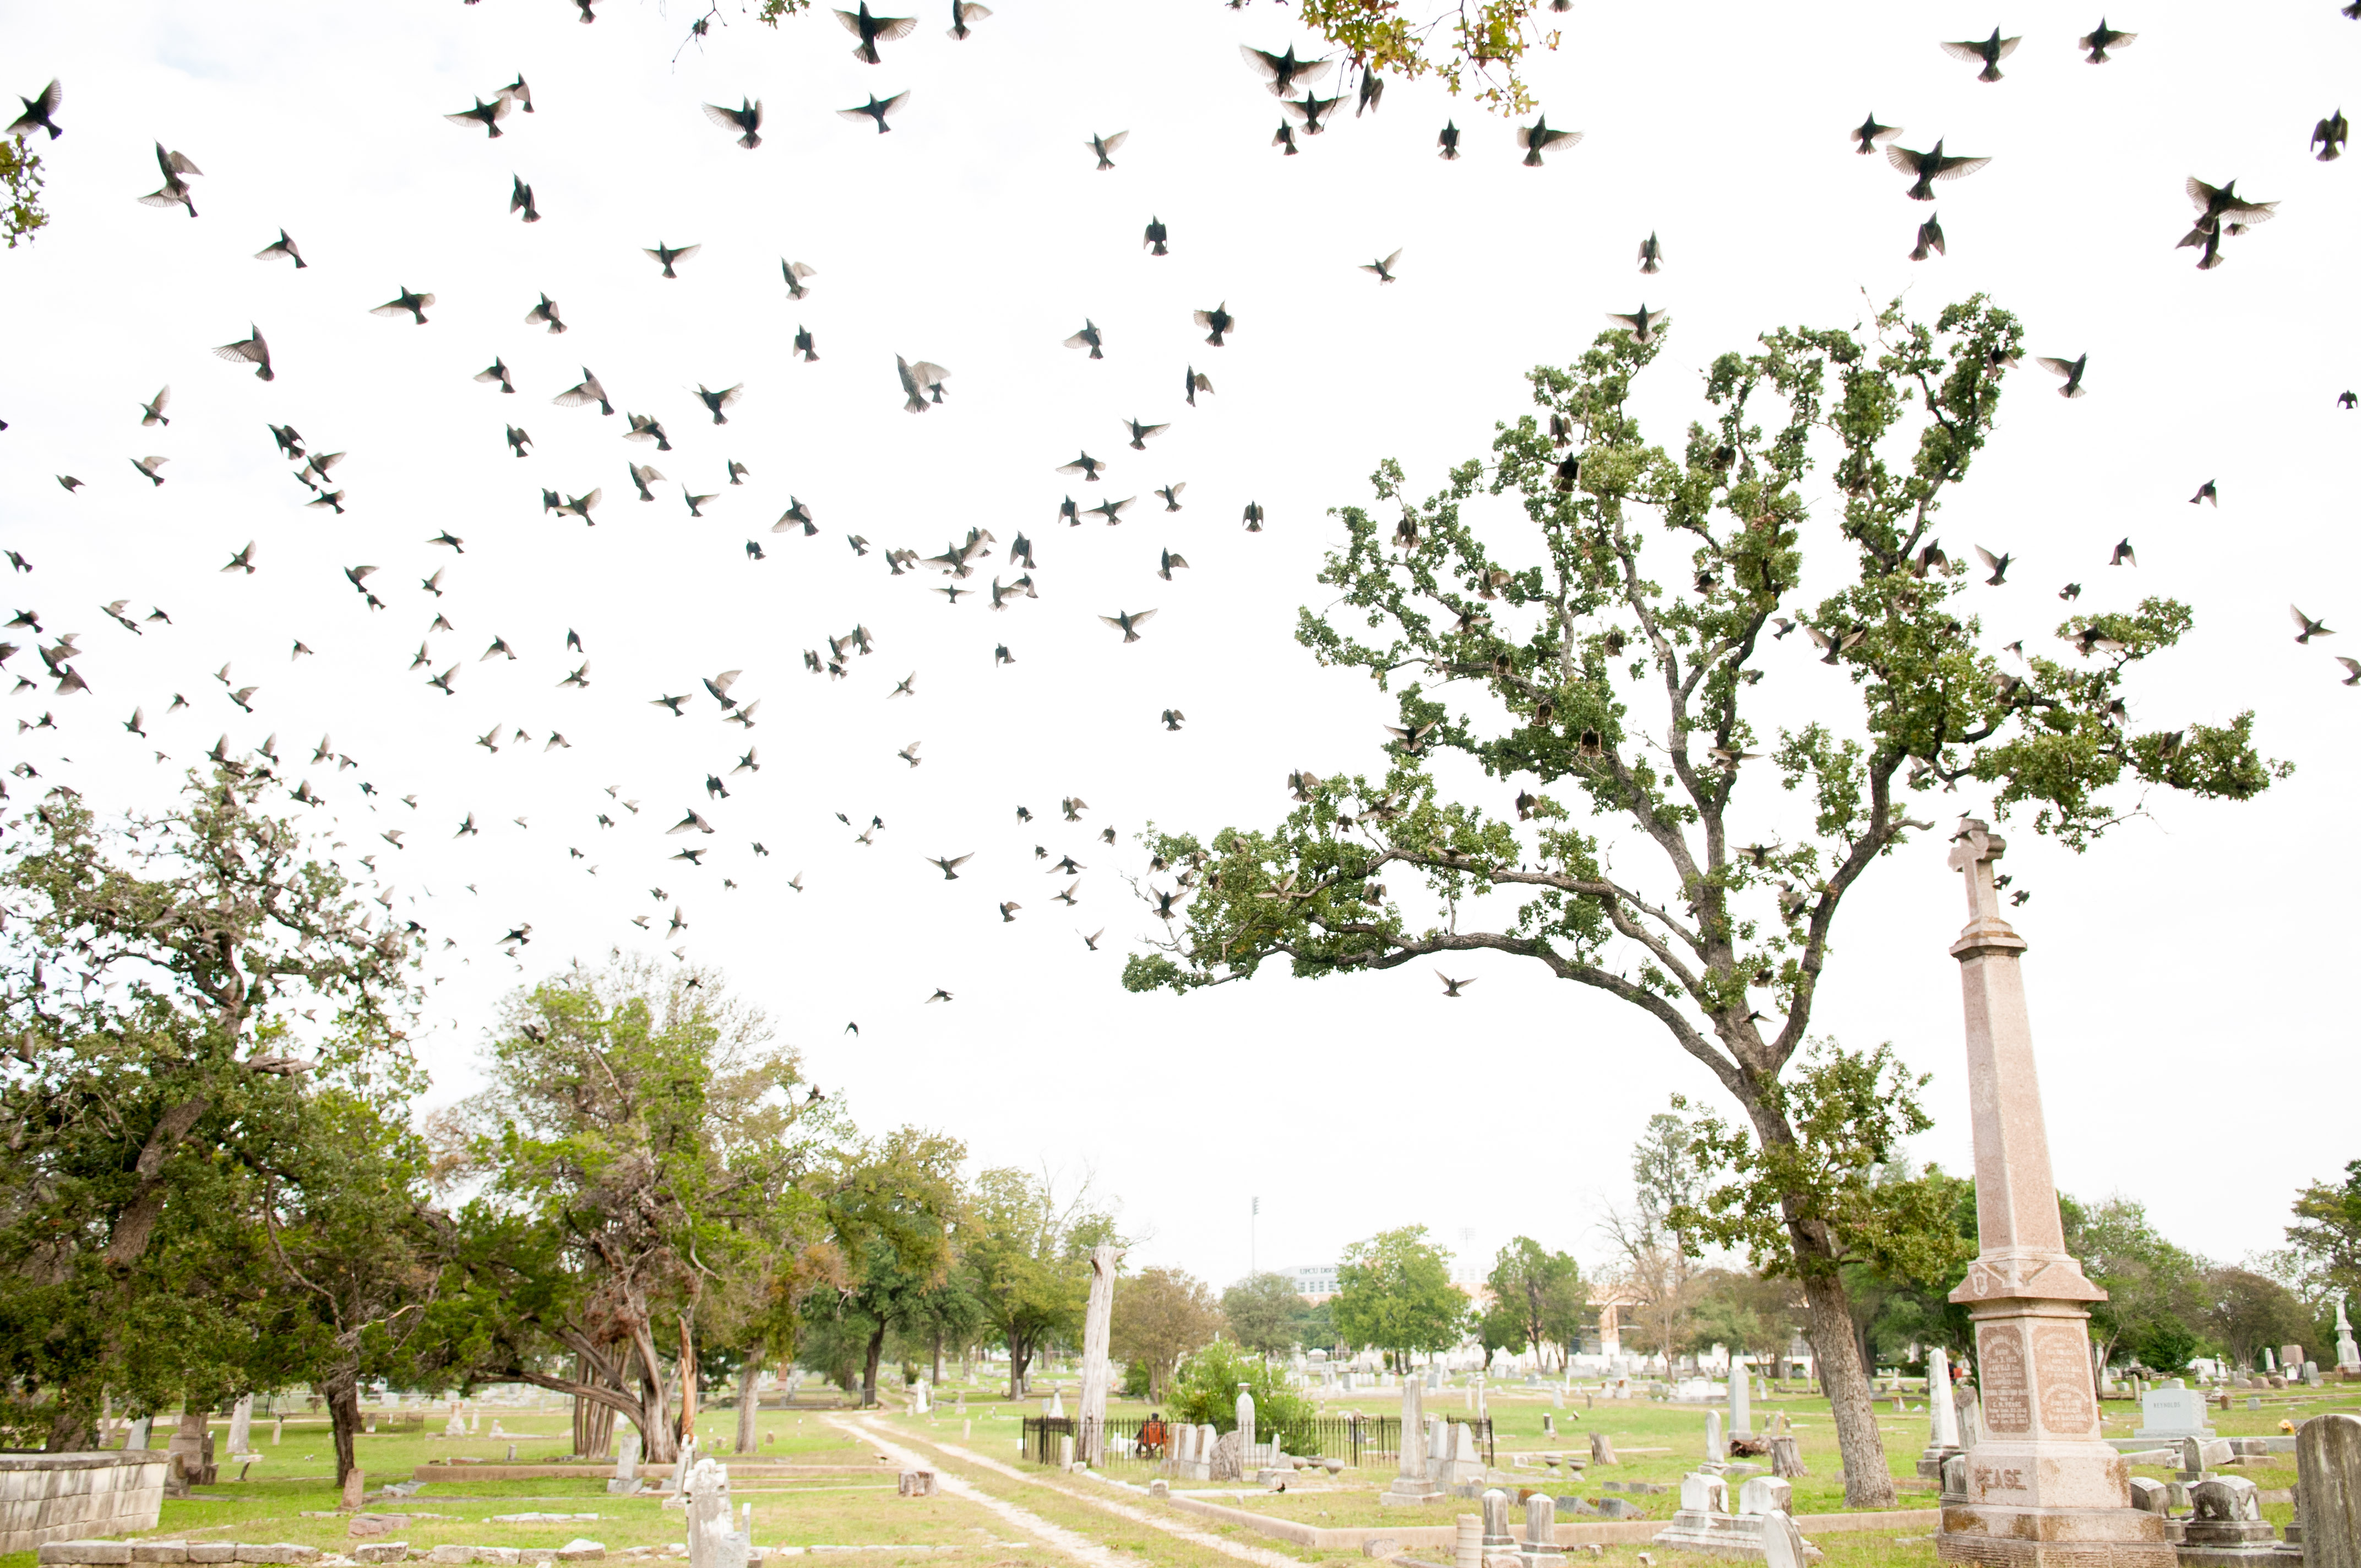 Birds fly away from the grave site to kick off an eerie morning. Photo by Skylar Isdale